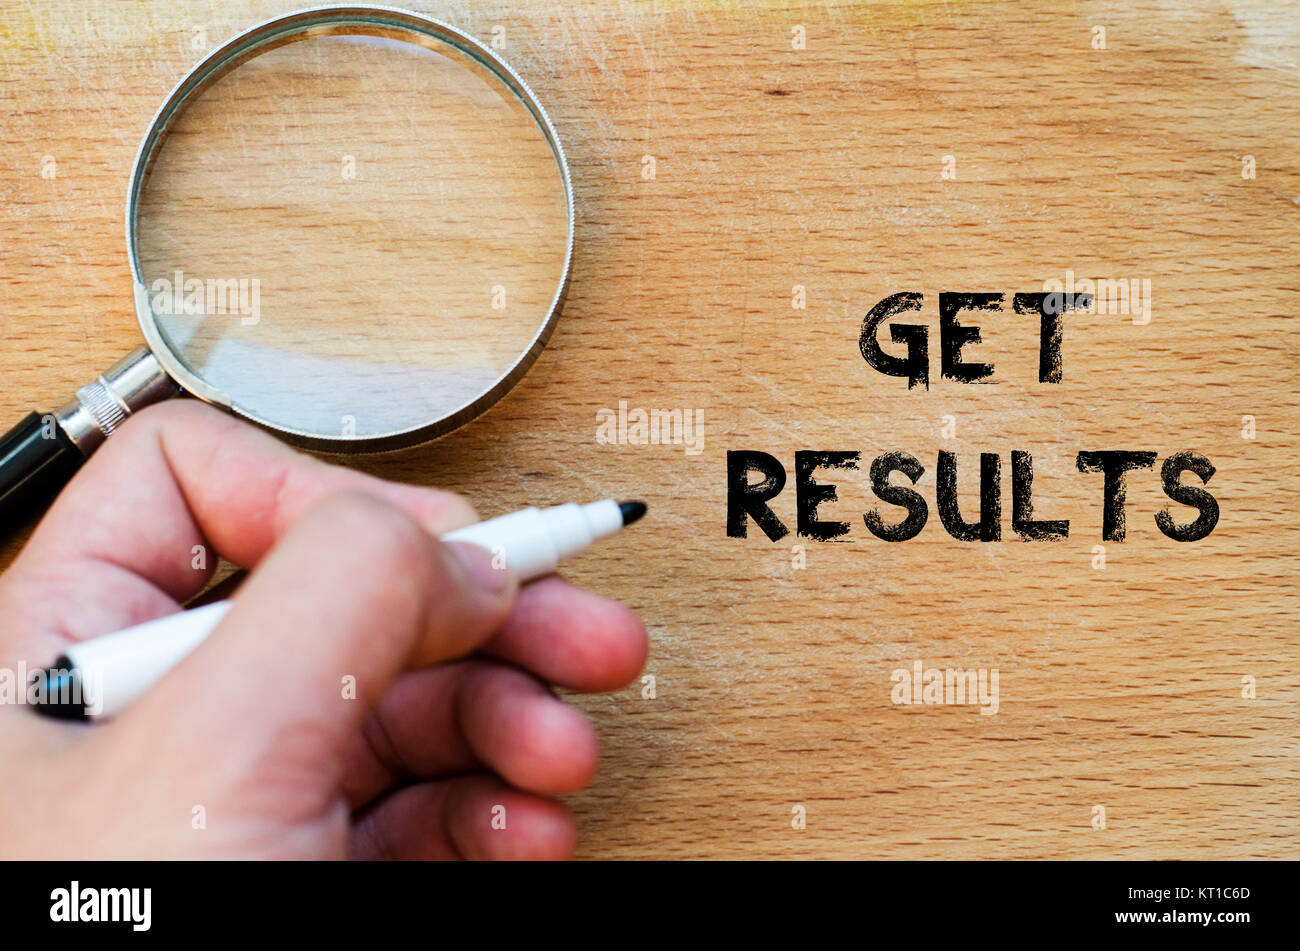 Get results text concept - Stock Image